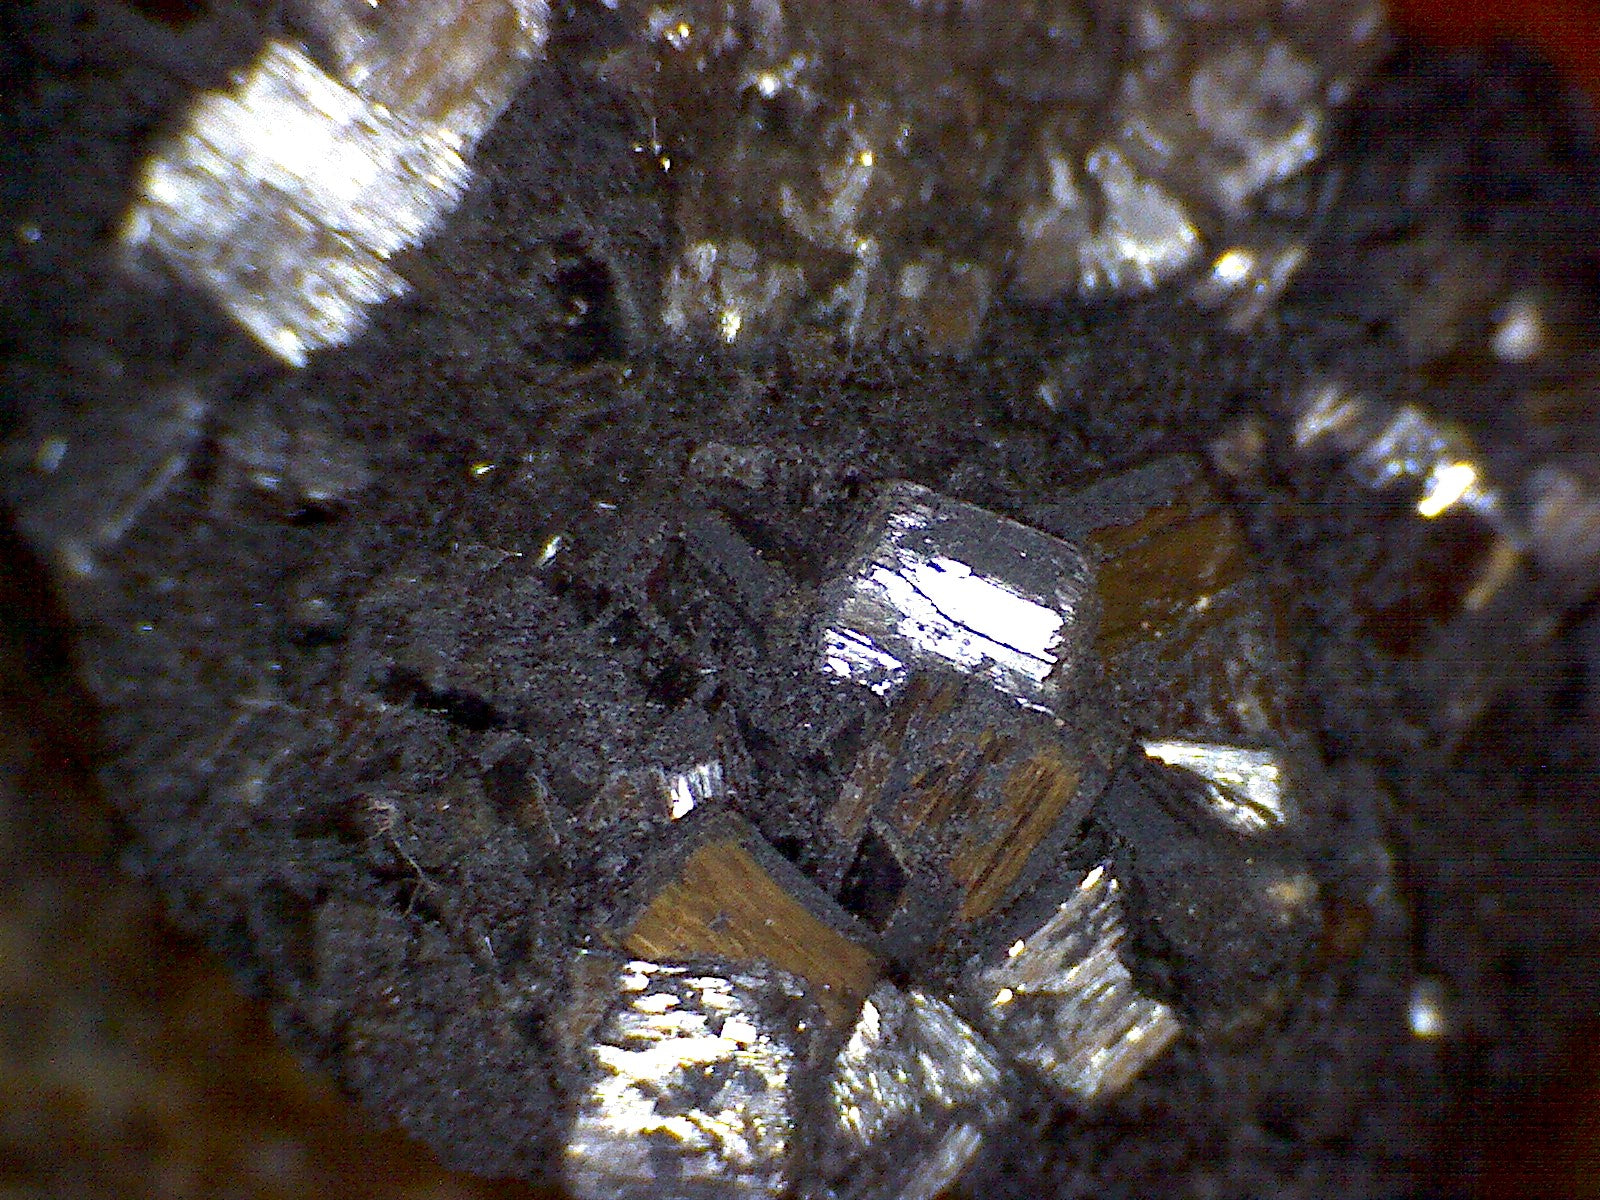 Ramsdellite crystals